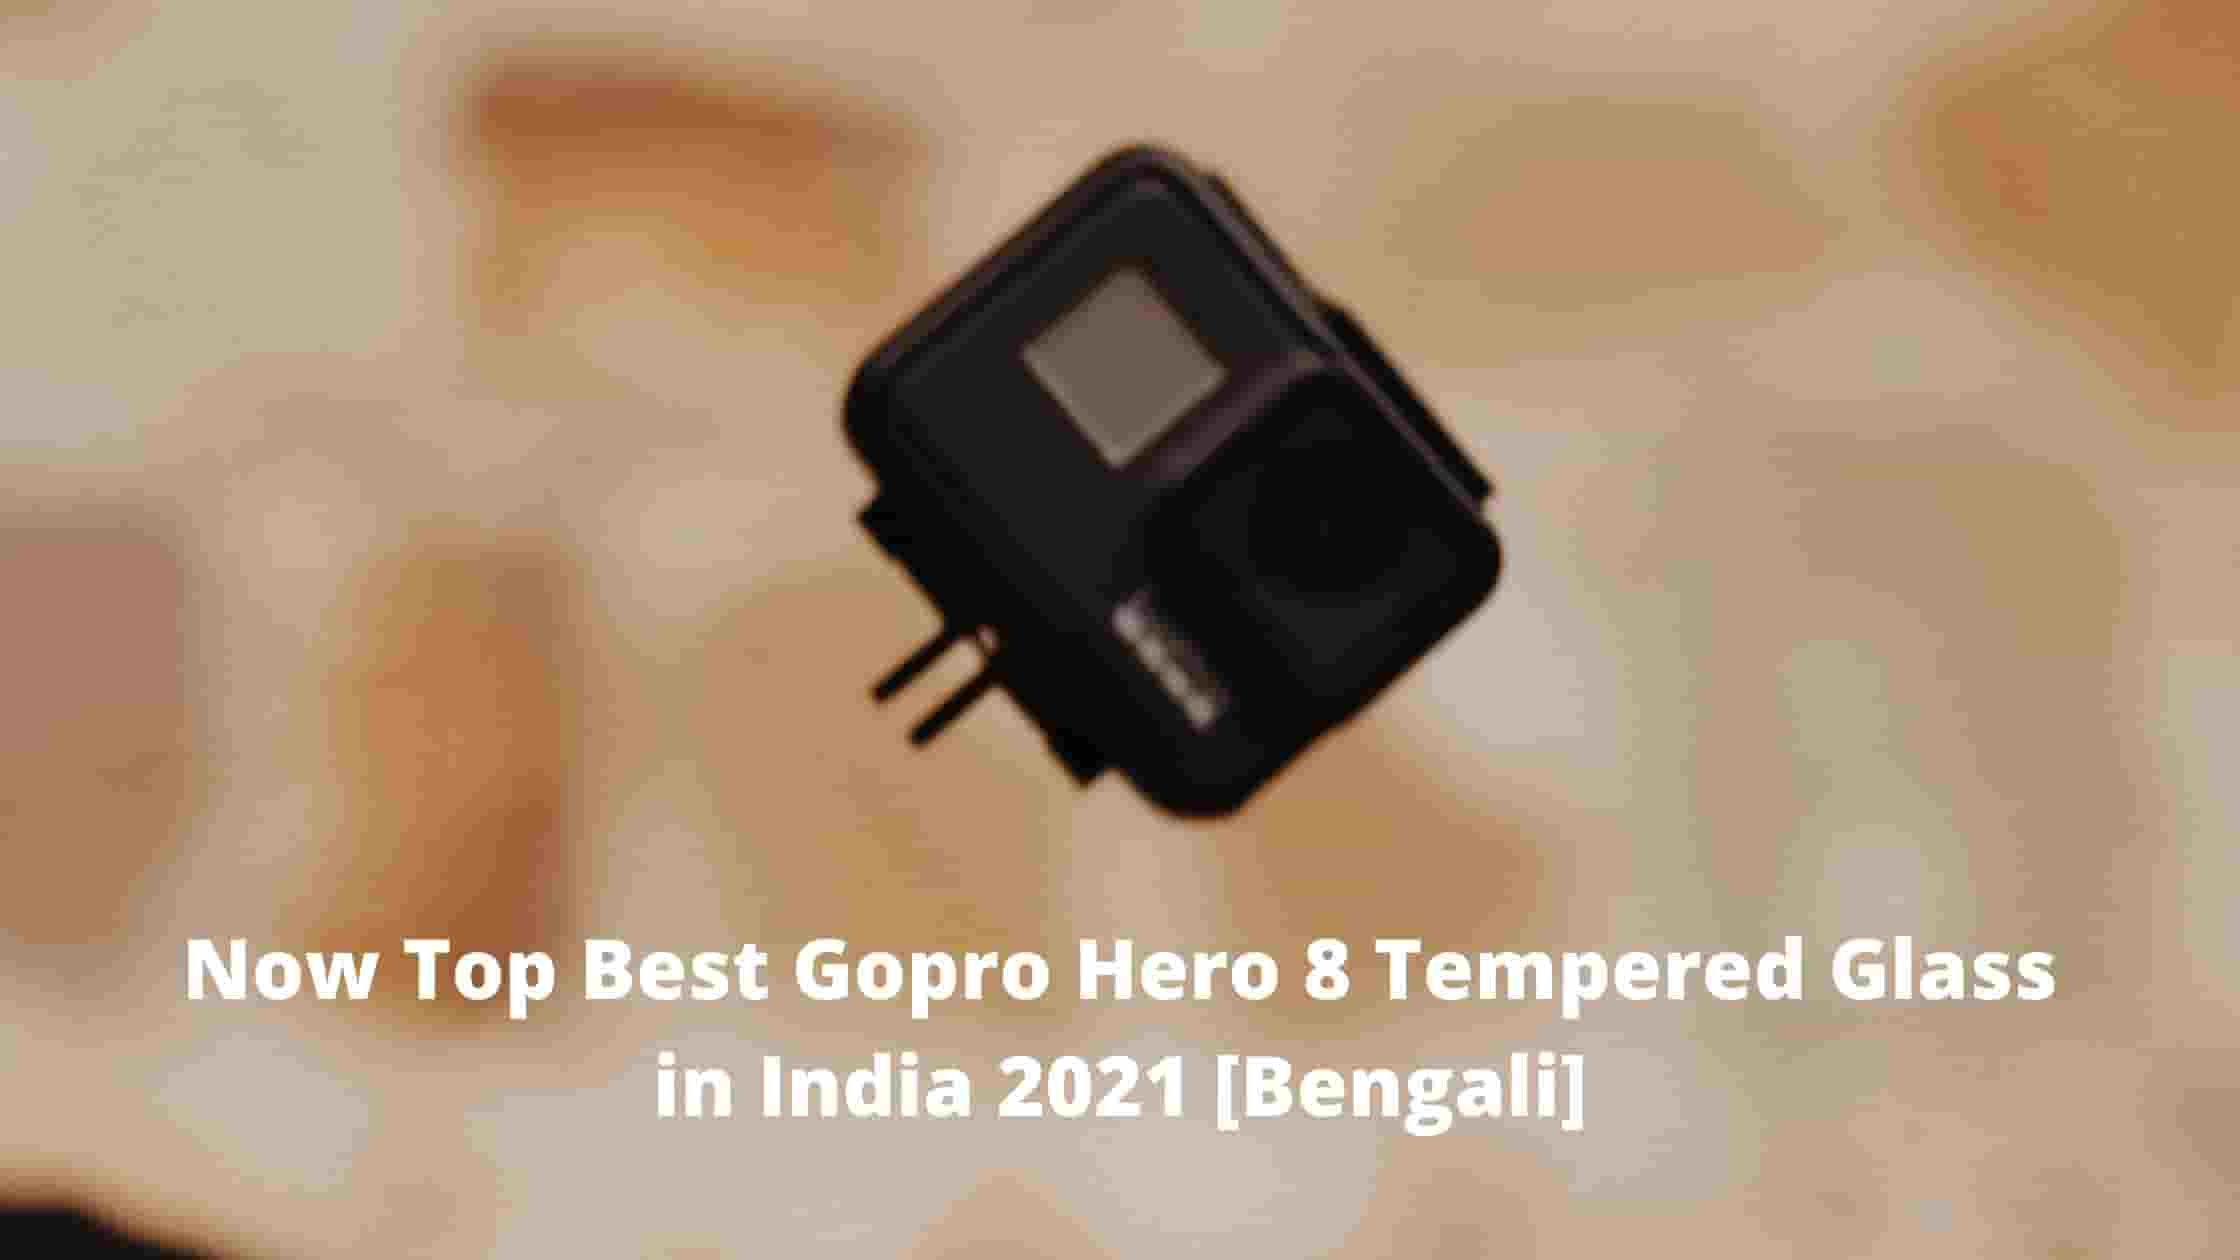 Now Top Best Gopro Hero 8 Tempered Glass in India 2021 [Bengali]